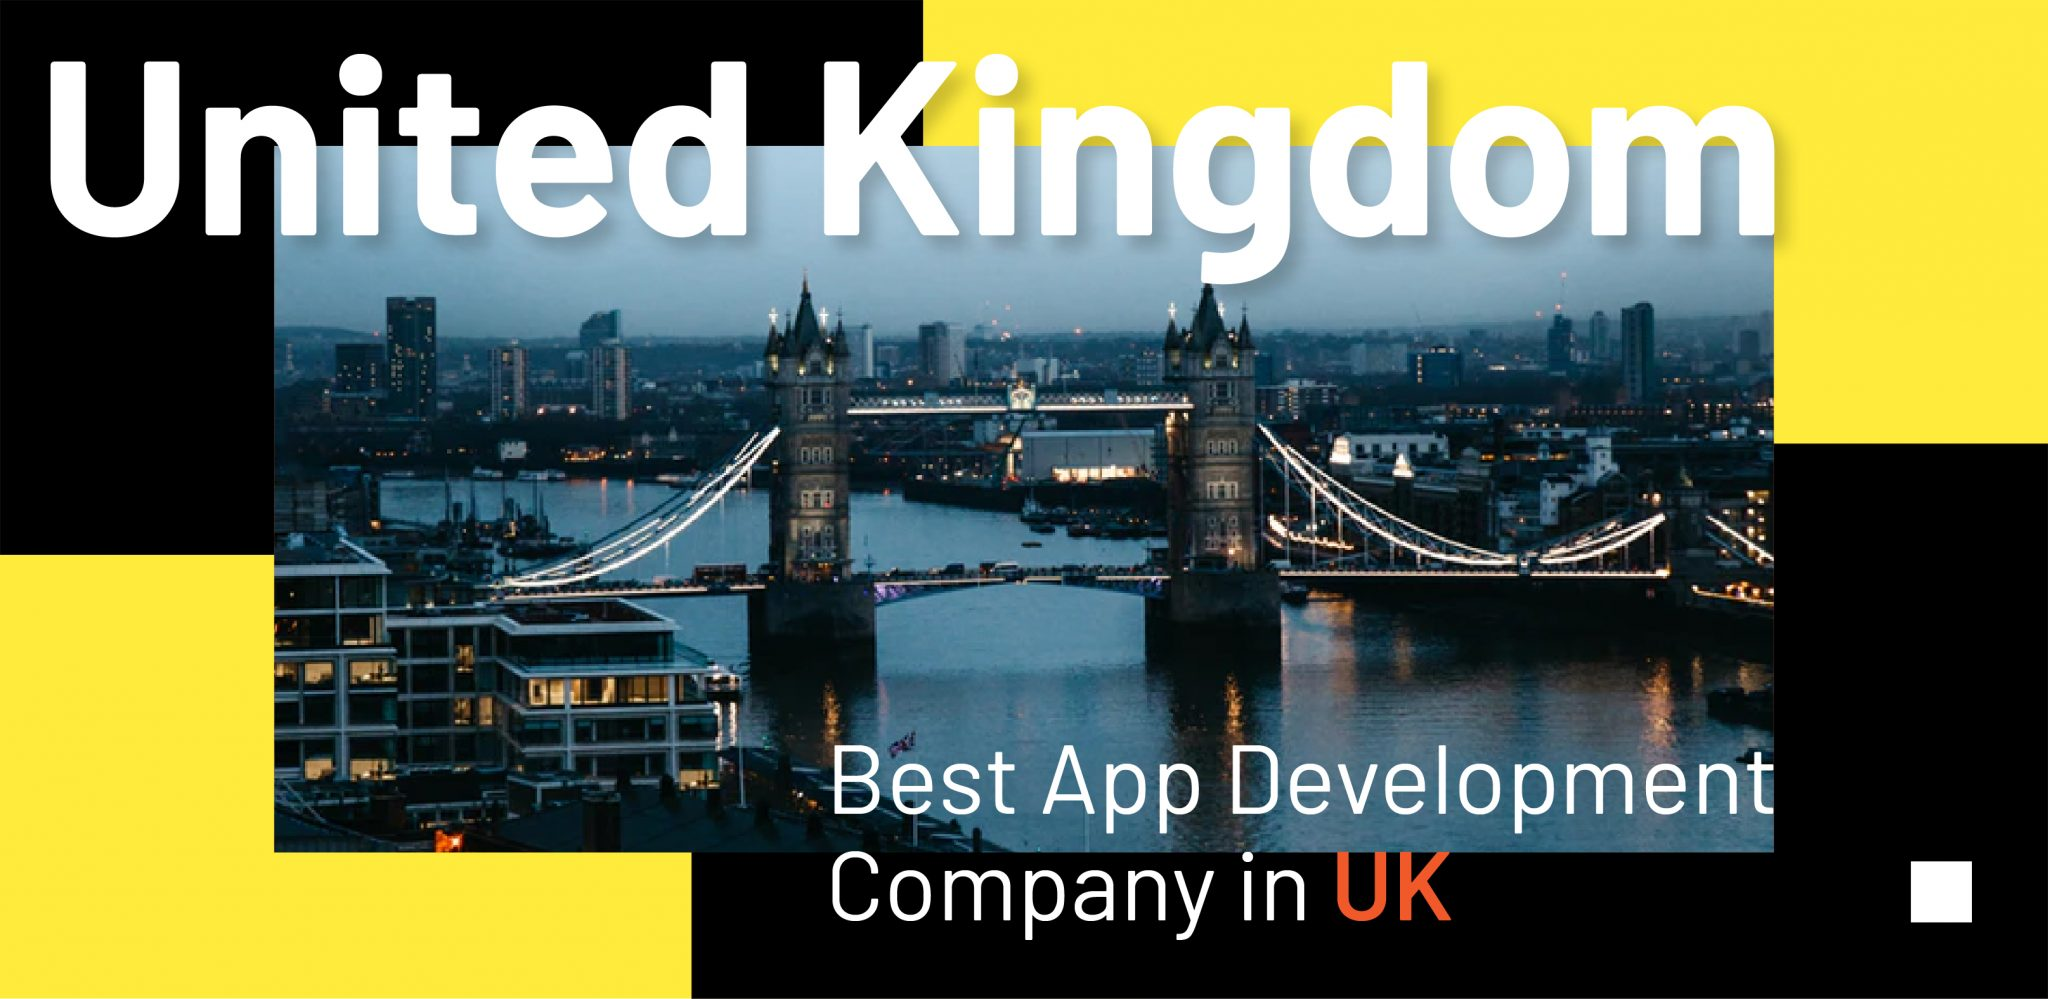 Best App Development Company in UK - WebClues Infotech